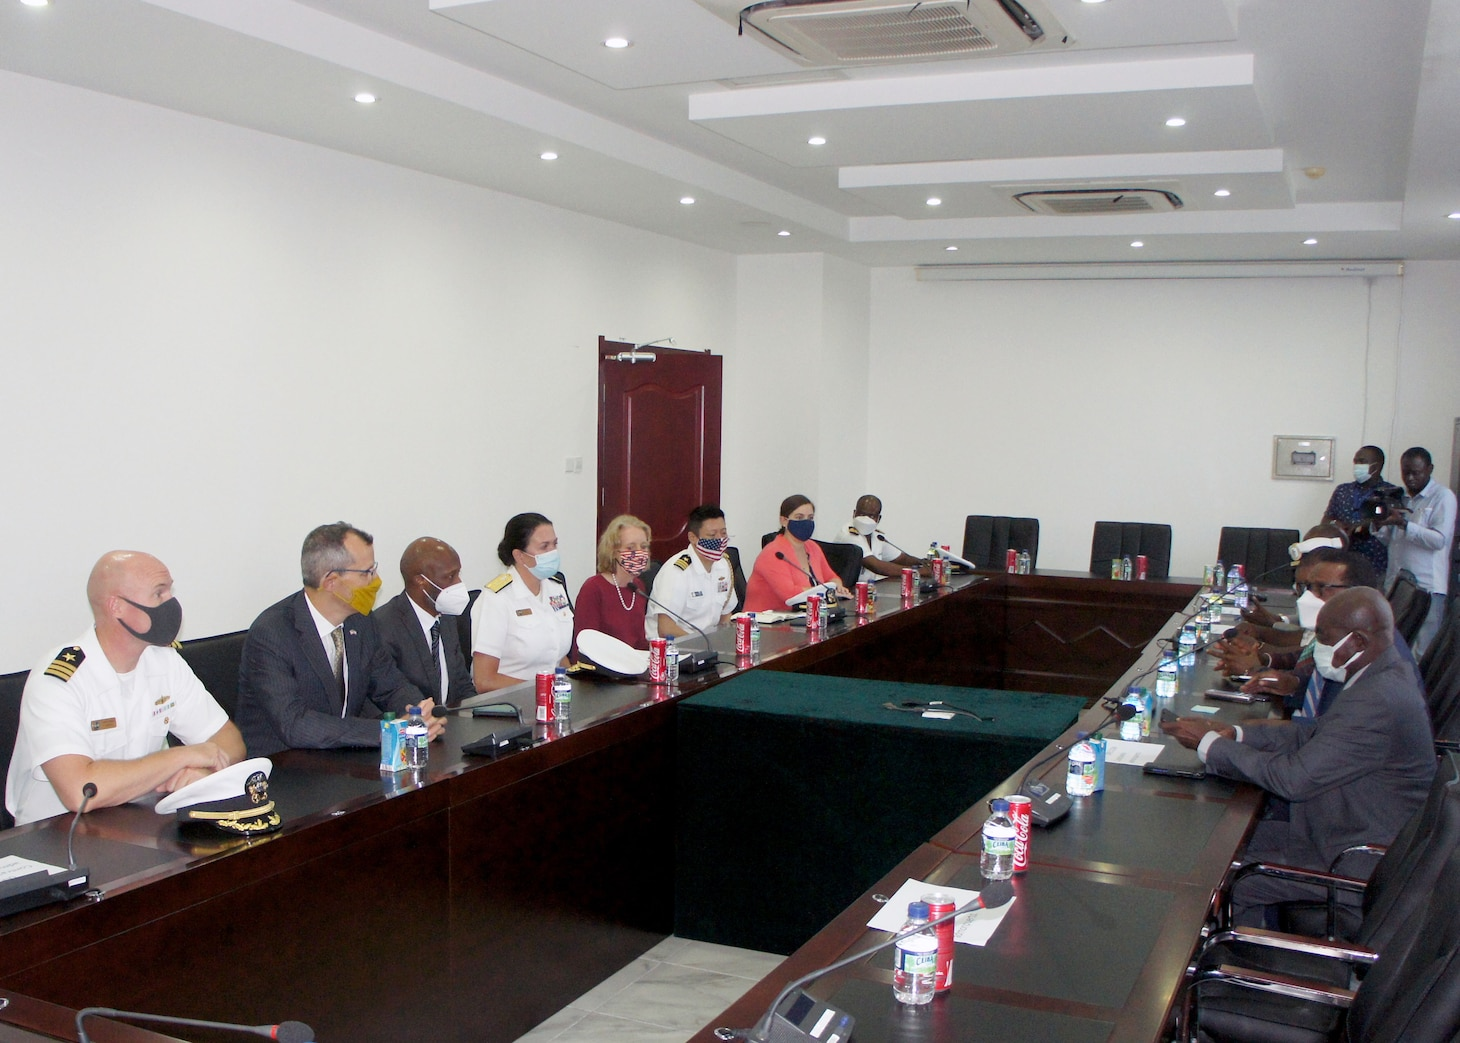 Rear Adm. Nancy Lacore, Chief of Staff, U.S. Naval Forces Europe and Africa and U.S. Sixth Fleet and Mark A. Schapiro, Foreign Policy Advisor, U.S. Naval Forces Europe-Africa meet with government and community leaders of Bata, Equatorial Guinea, Aug. 25, 2021. U.S. Sixth Fleet, headquartered in Naples, Italy, conducts the full spectrum of joint and naval operations, often in concert with allied and interagency partners, in order to advance U.S. national interests and security and stability in Europe and Africa.